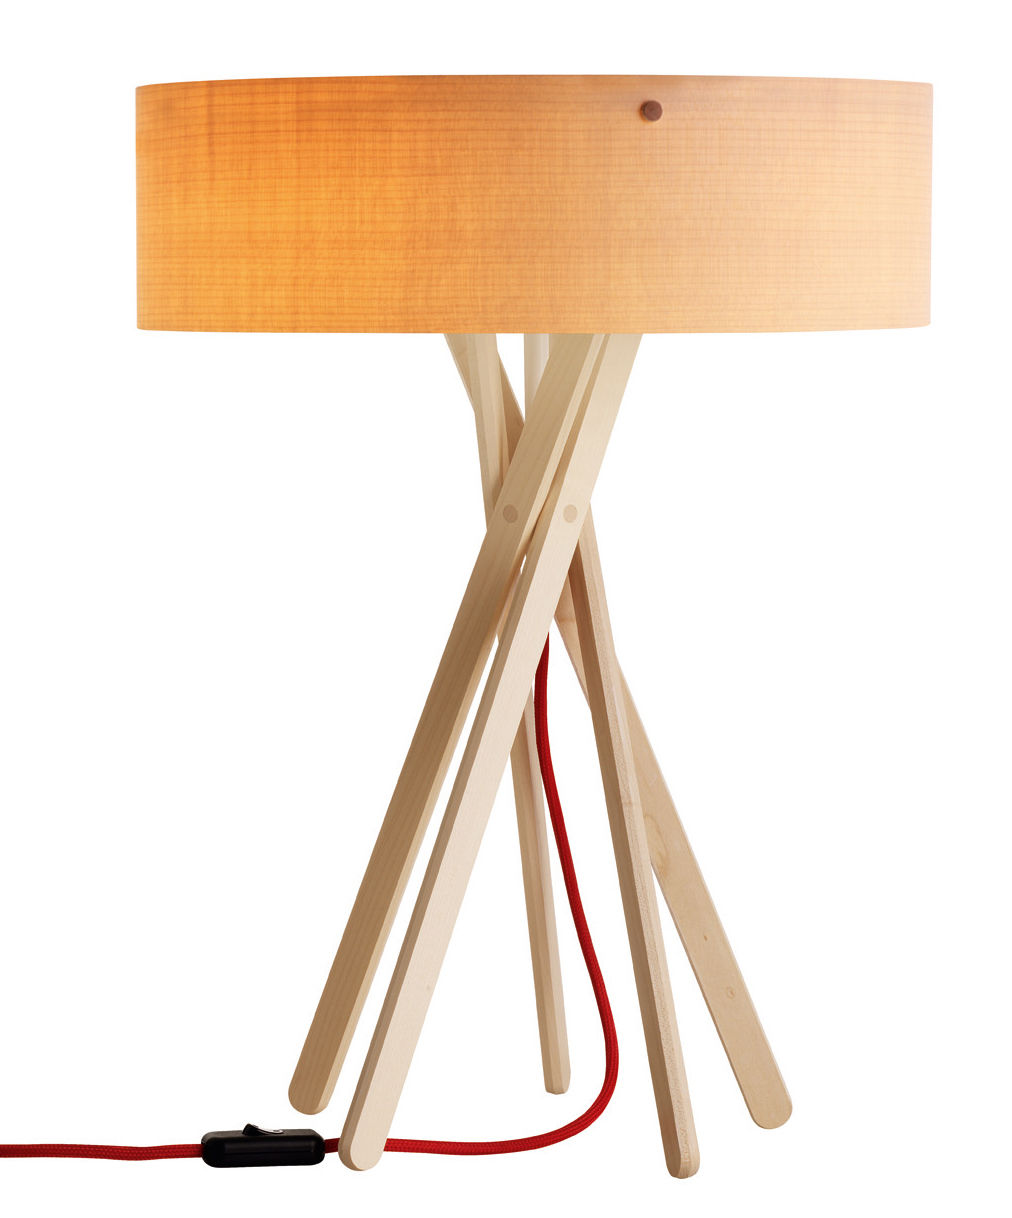 Lampe de table arba bois belux - Lampe de table bois ...